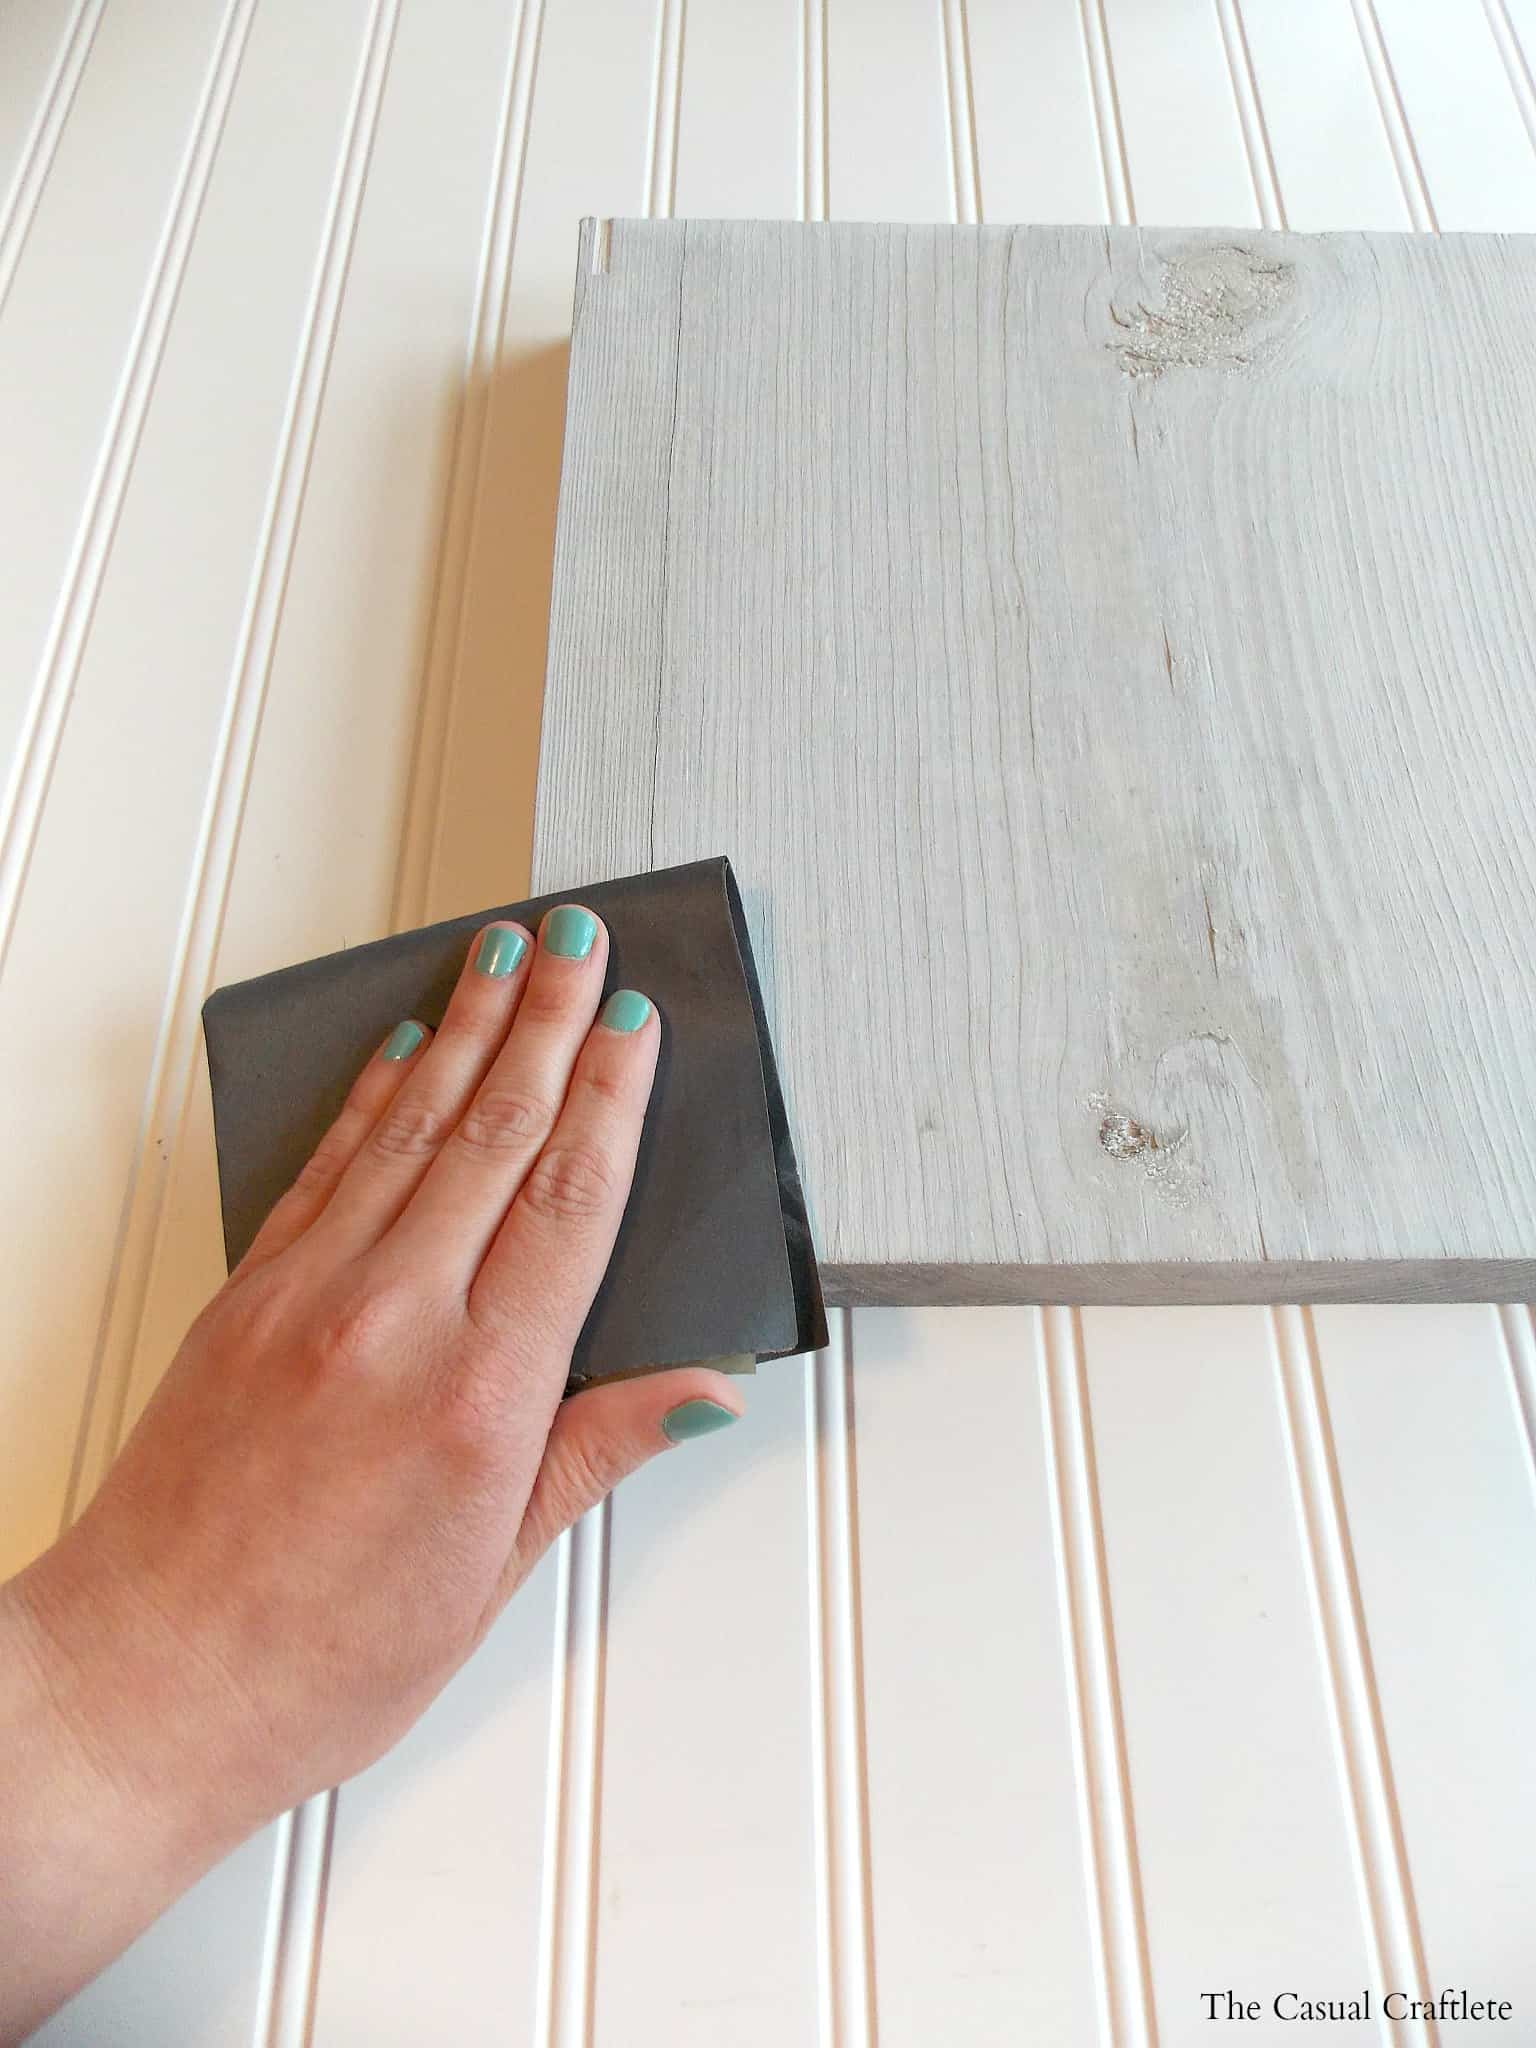 Using sandpaper on painted wood for a rustic look